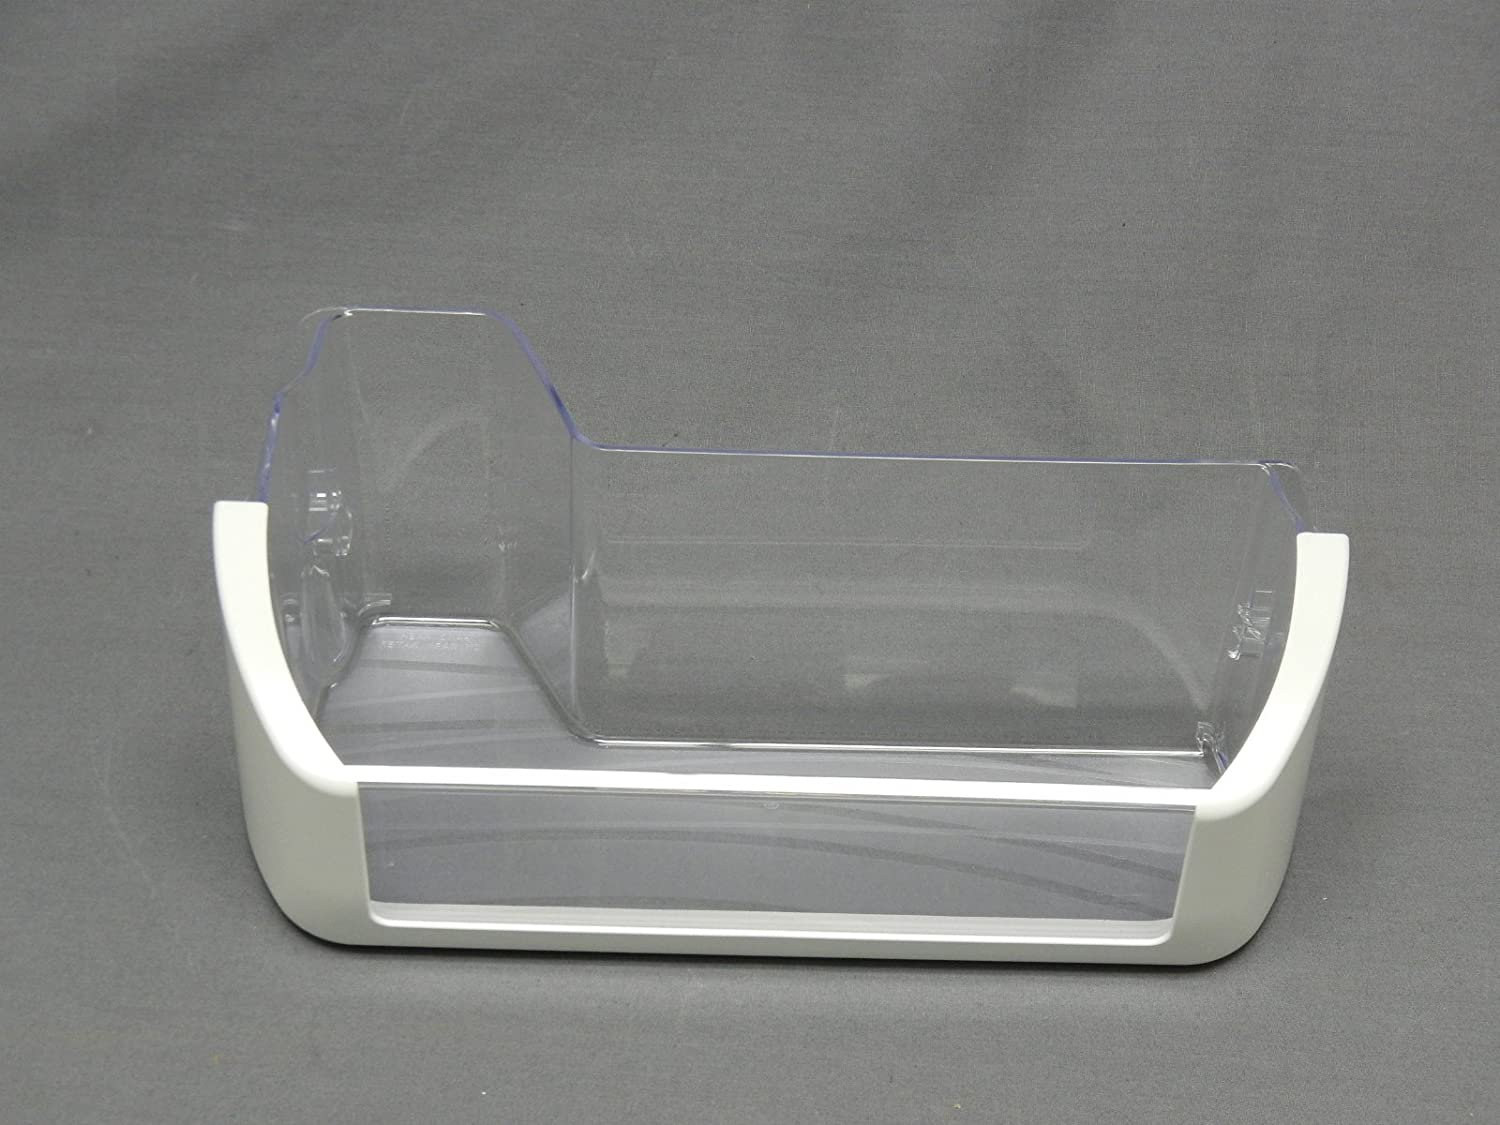 Frigidaire 242037202 Refrigerator Door Shelf Bin